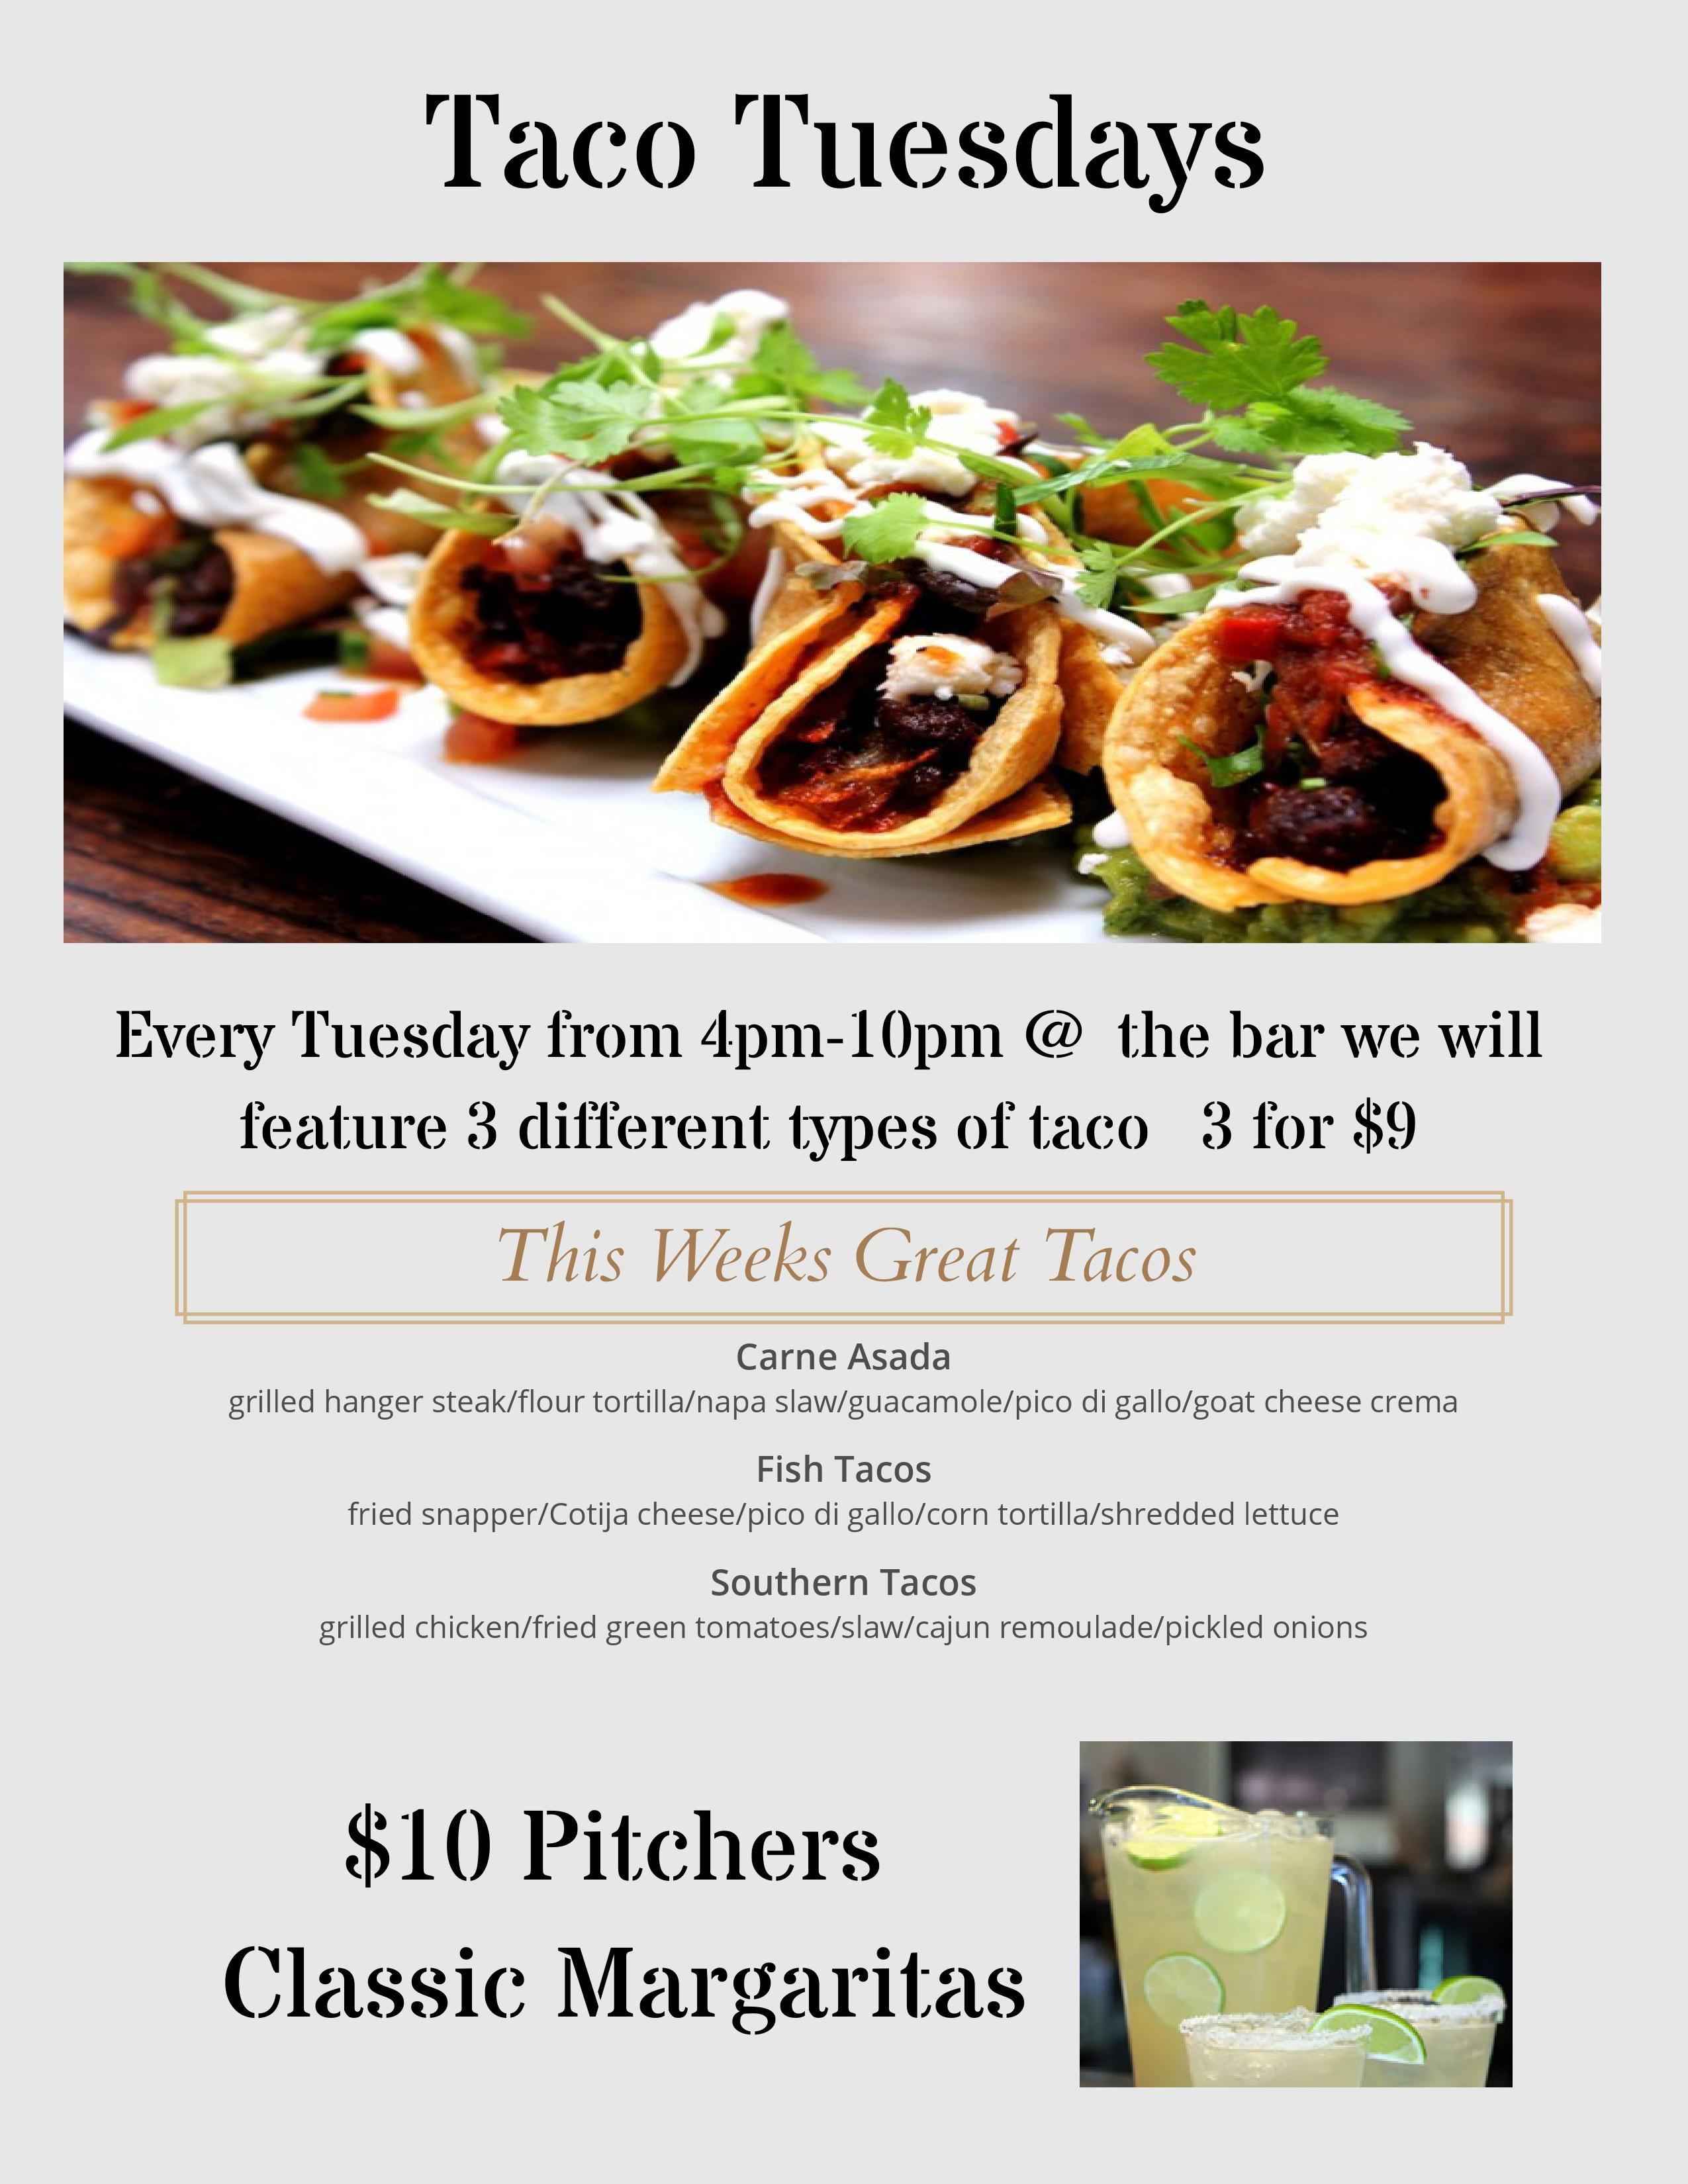 Taco Tuesdays. Every tuesday from 4p.m. - 10 p.m. @ the bar we will feature 3 different types of taco 3 for $9. This weeks great tacos- carne asada: grilled hanger steak/flour tortilla/napa slaw/guacamole/pico di gallo/goat cheese crema, fish tacos: fried snapper/cotja cheese/pico di gallo/ corn tortilla/shredded lettuce, southern tacos: grilled chicken/fried green tomatoes/slaw/cajun remoulade/pickled onions. $10 pitchers classic margaritas.